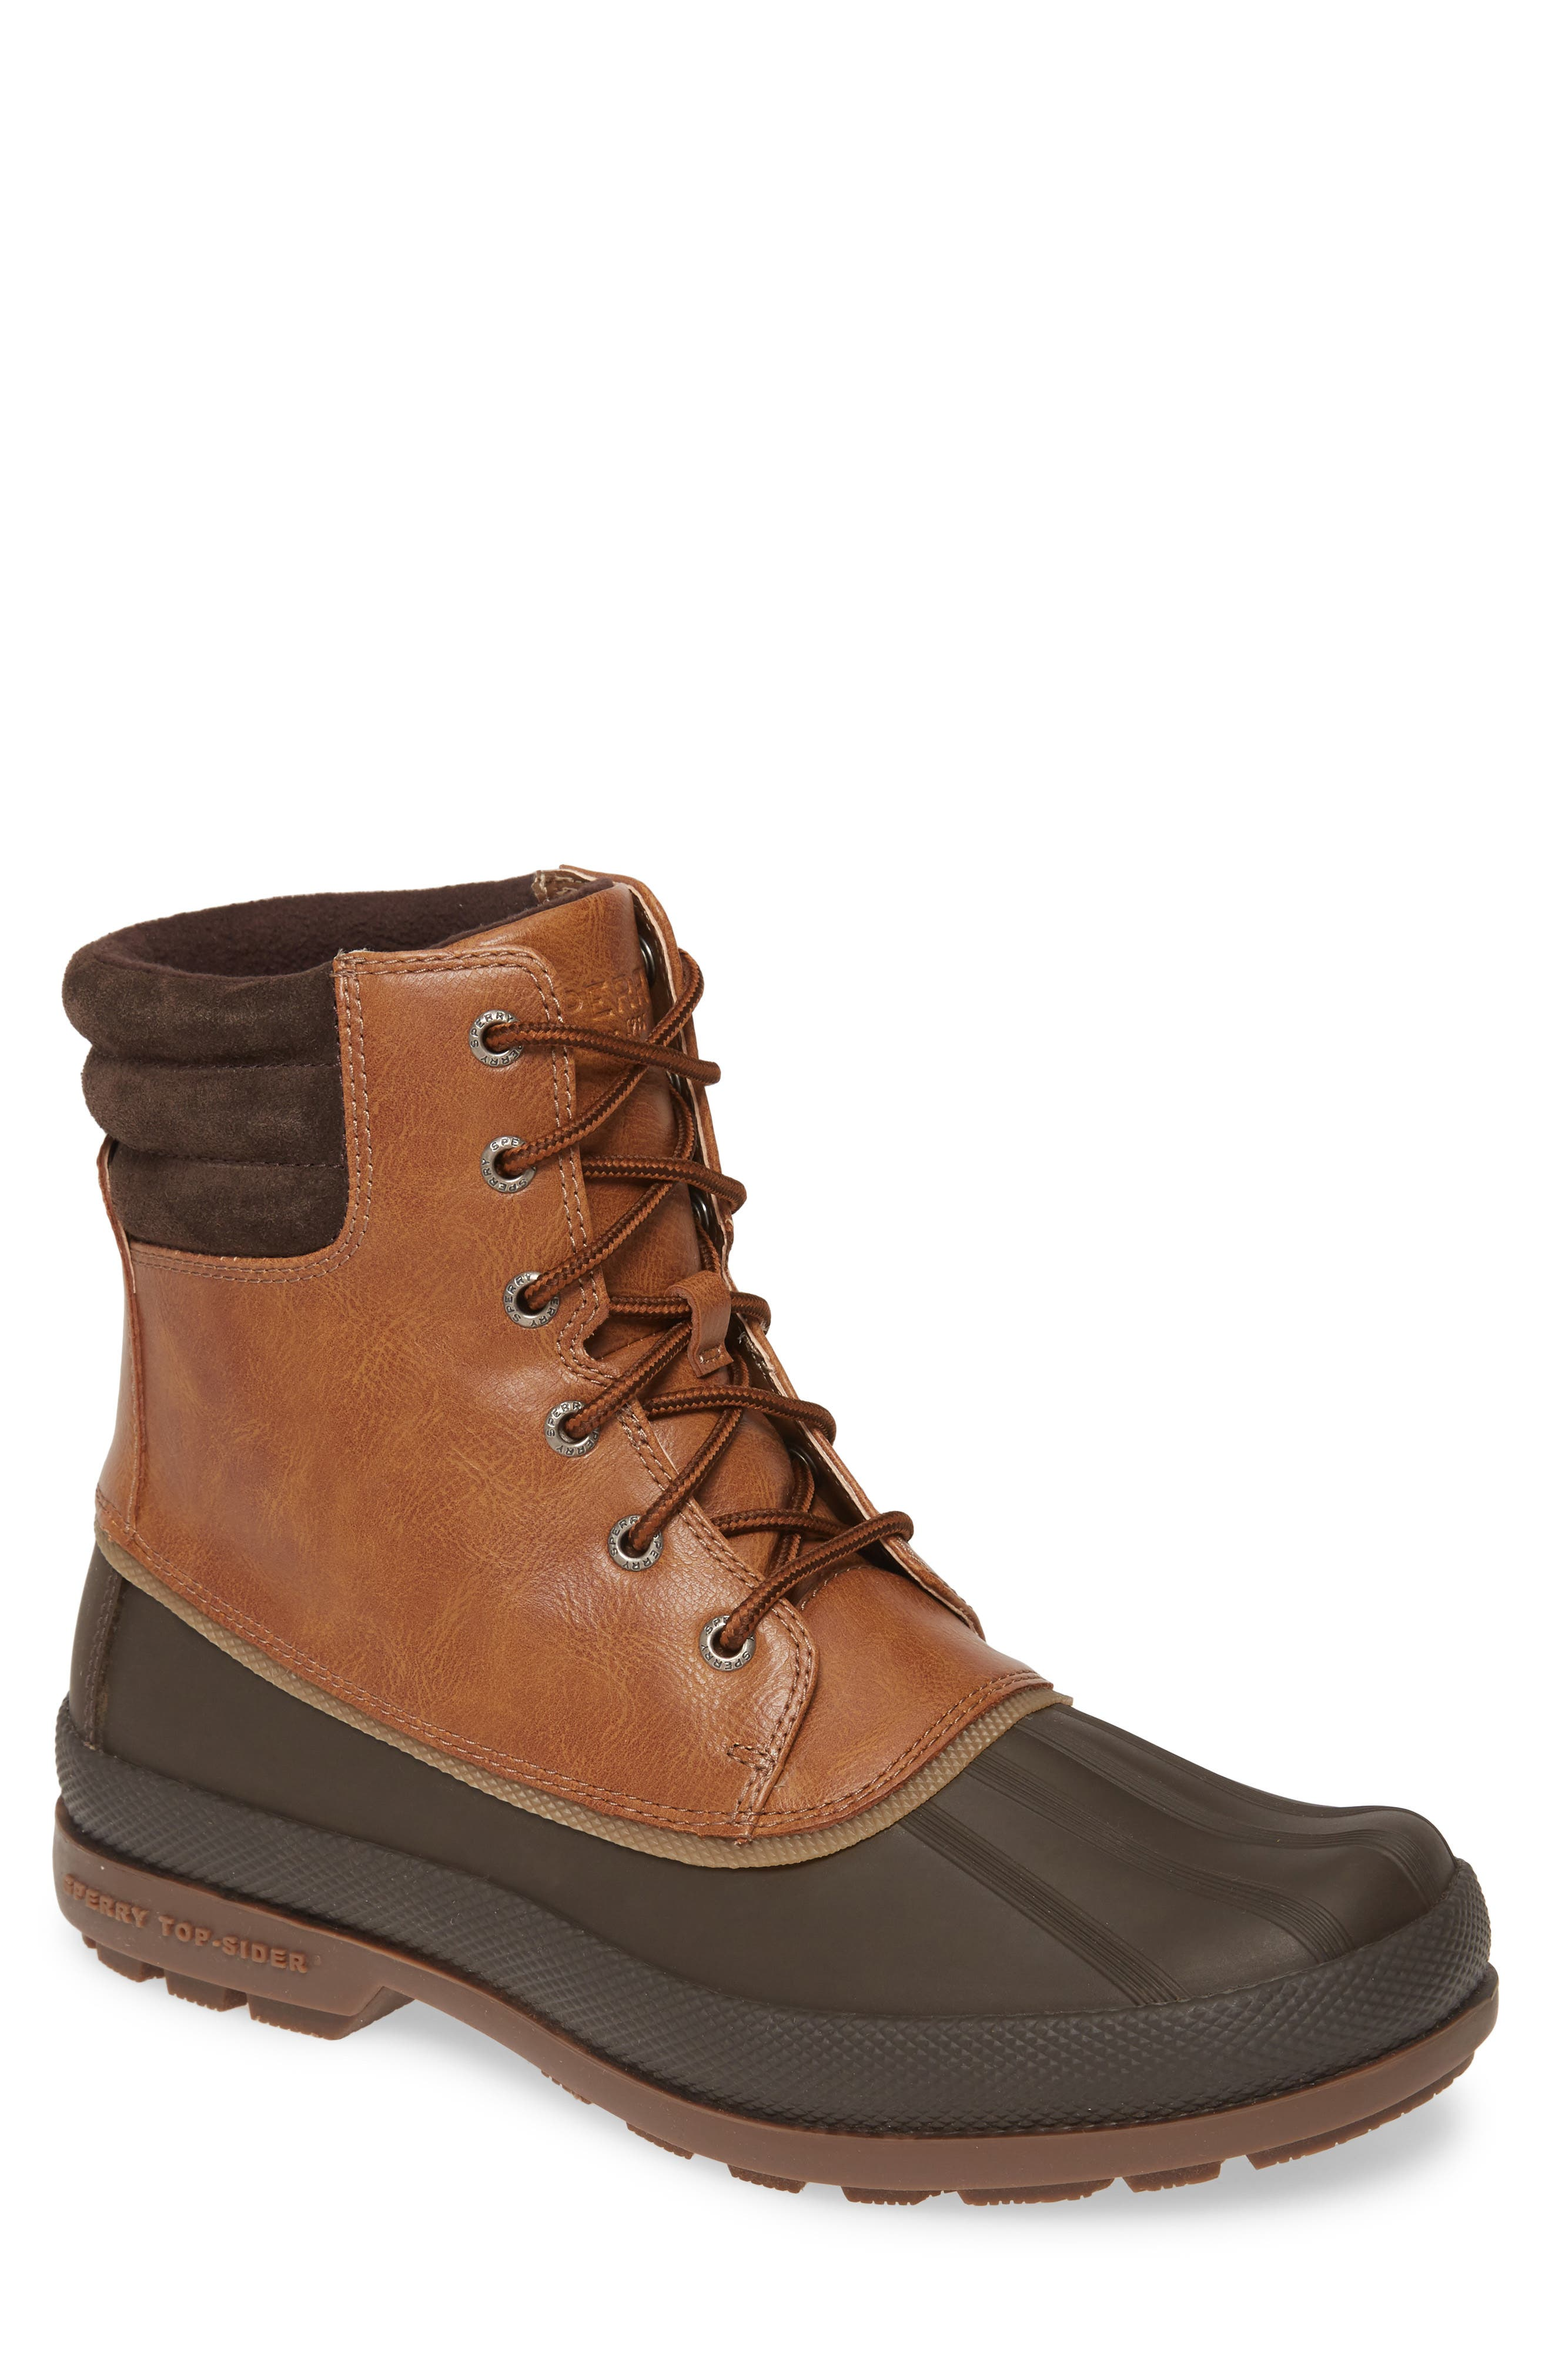 Image of Sperry Cold Bay Duck Boot